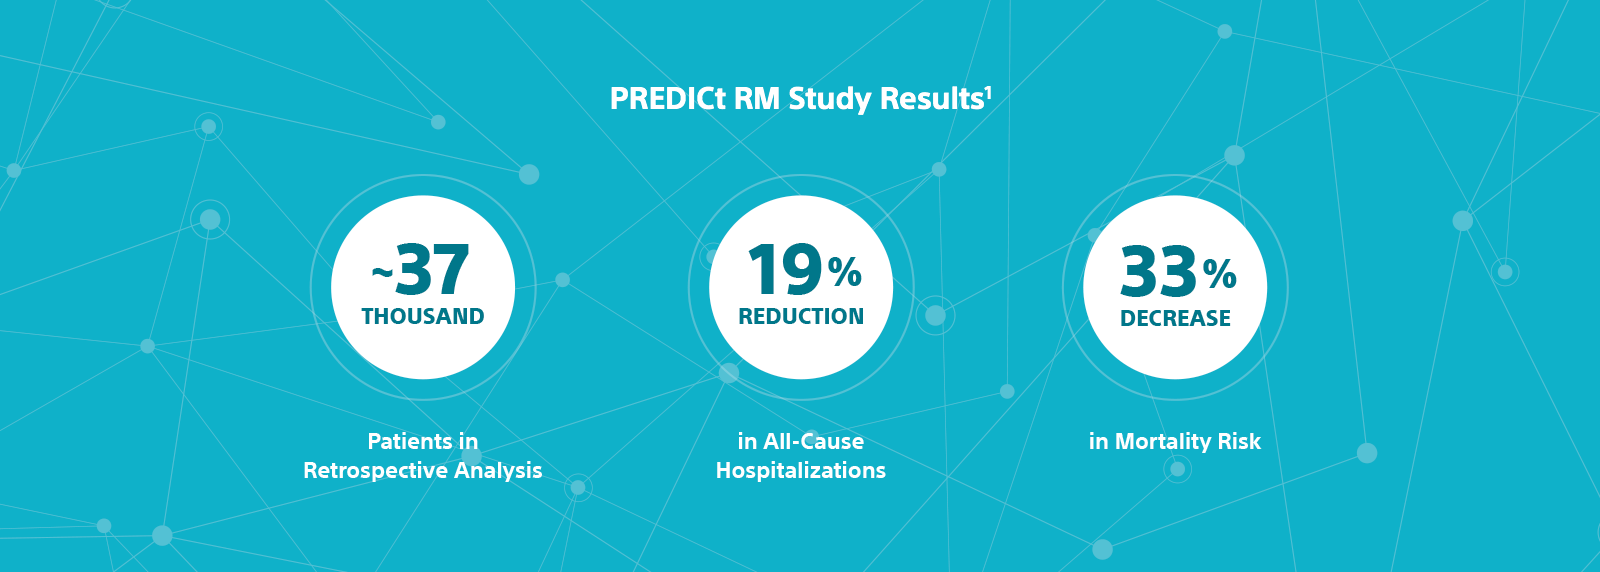 Graphics showing approximately 37,000 patients in retrospective analysis from the PREDICt RM Study, a 19% reduction in all-cause hospitalizations for remotely monitored patients, a 33% decrease in mortality risk for remotely monitored patients.